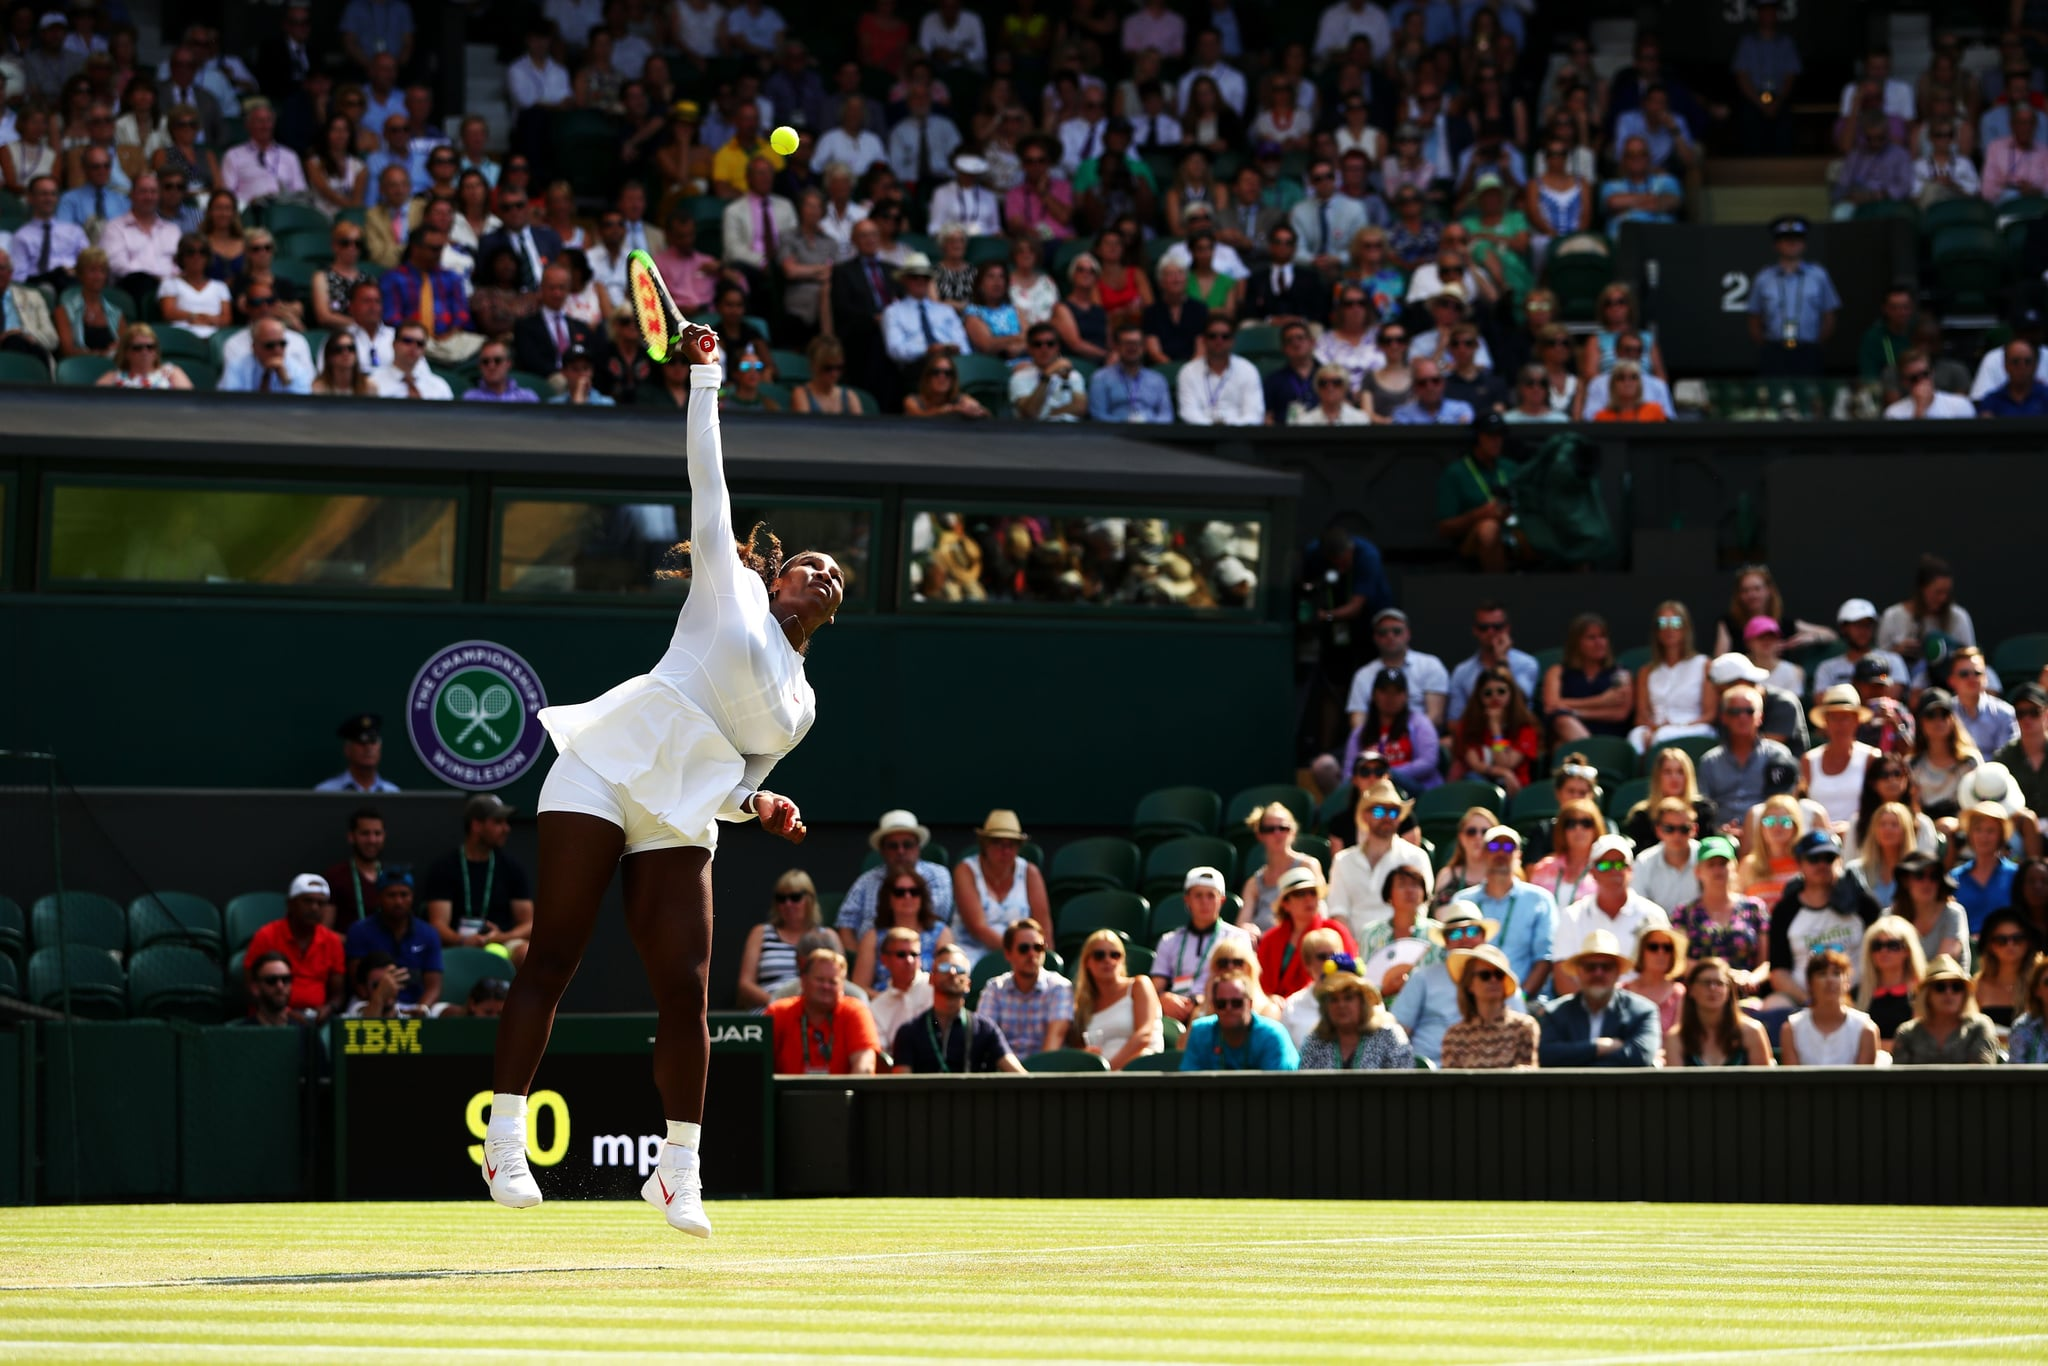 LONDON, ENGLAND - JULY 06:  Serena Williams of the United States serves against Kristina Mladenovic of France during their Ladies' Singles third round match on day five of the Wimbledon Lawn Tennis Championships at All England Lawn Tennis and Croquet Club on July 6, 2018 in London, England.  (Photo by Matthew Stockman/Getty Images)